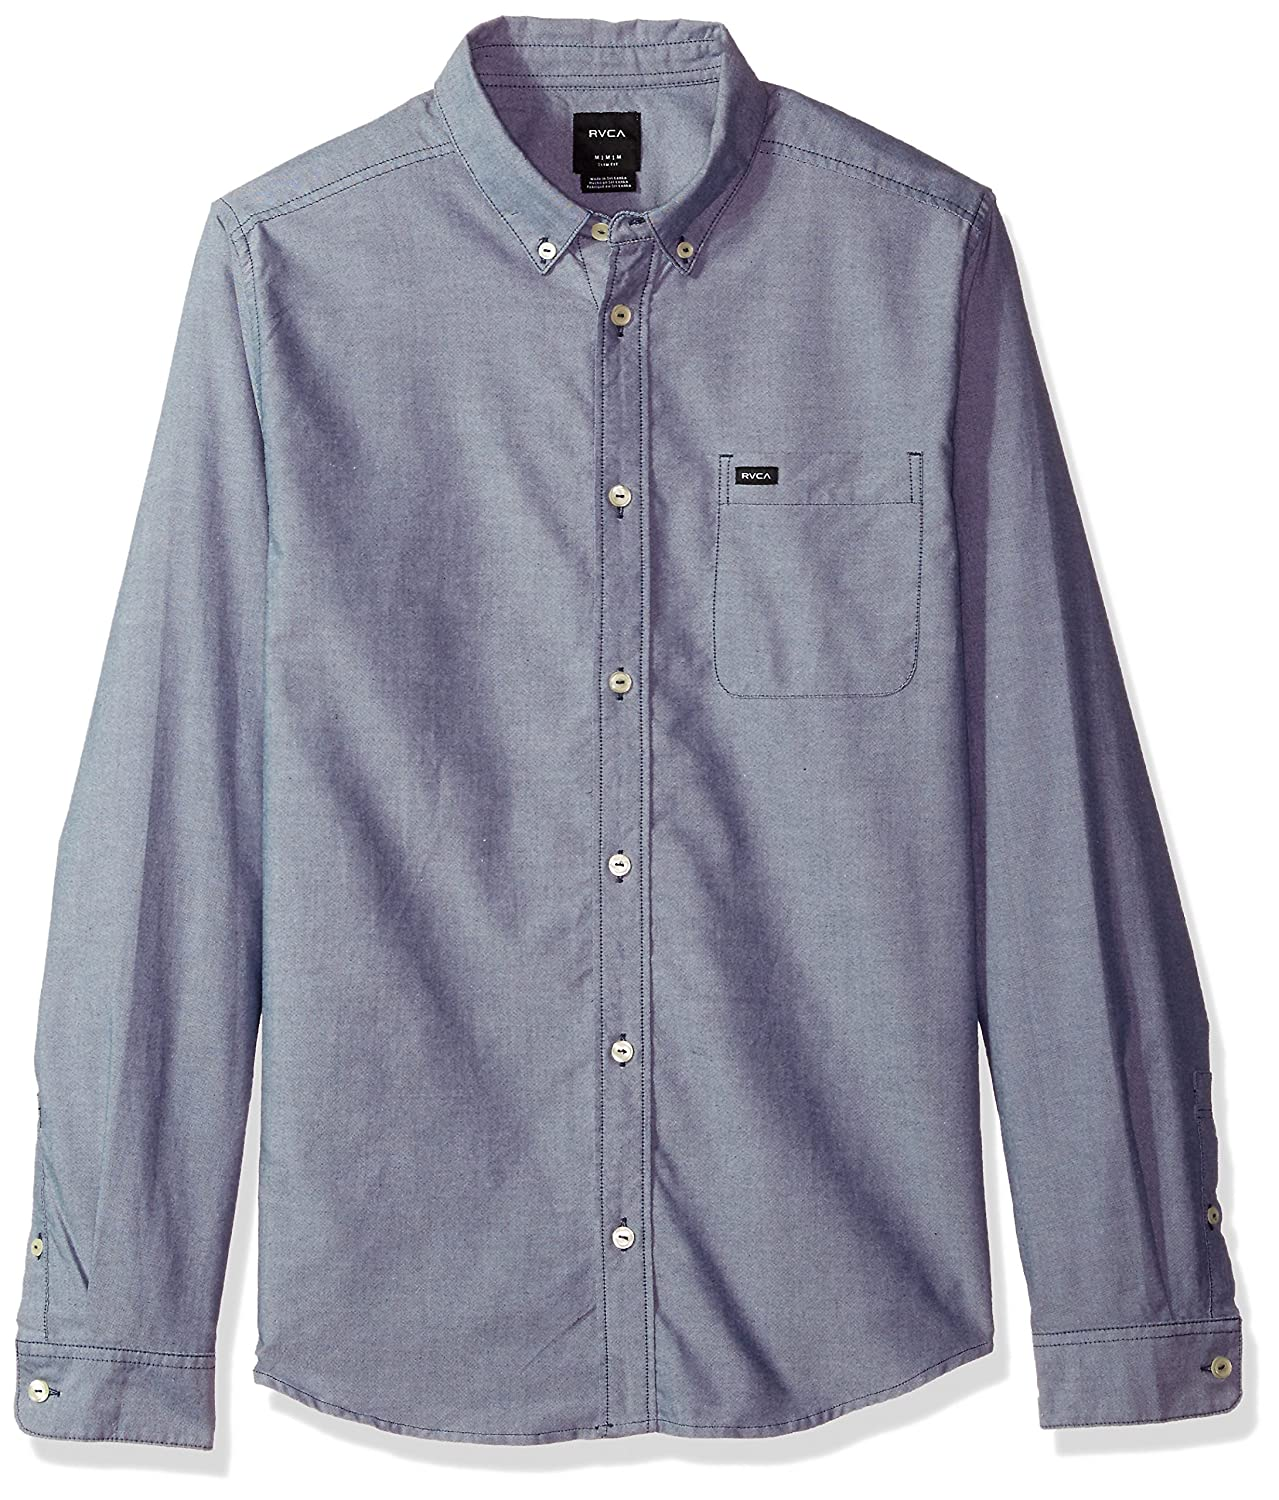 RVCA Mens Oxford Long Sleeve Button Down Shirt